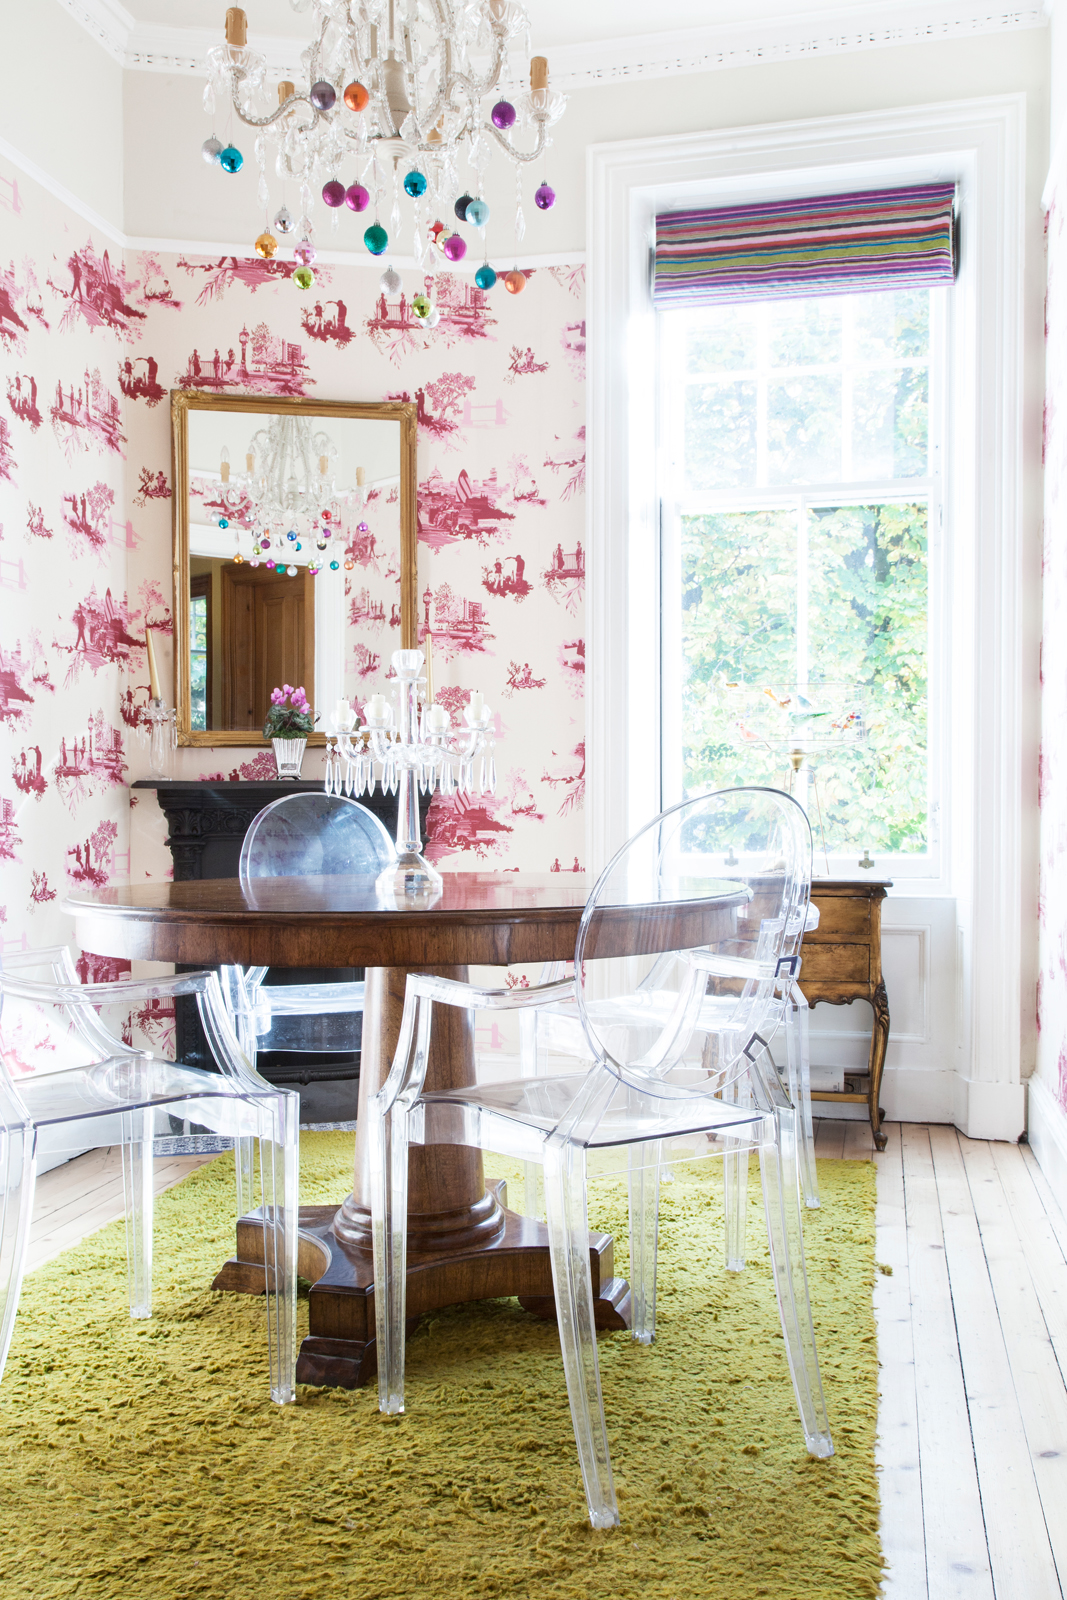 Perspex Ghost chairs: ALL the husband's idea/Photo: Susie Lowe